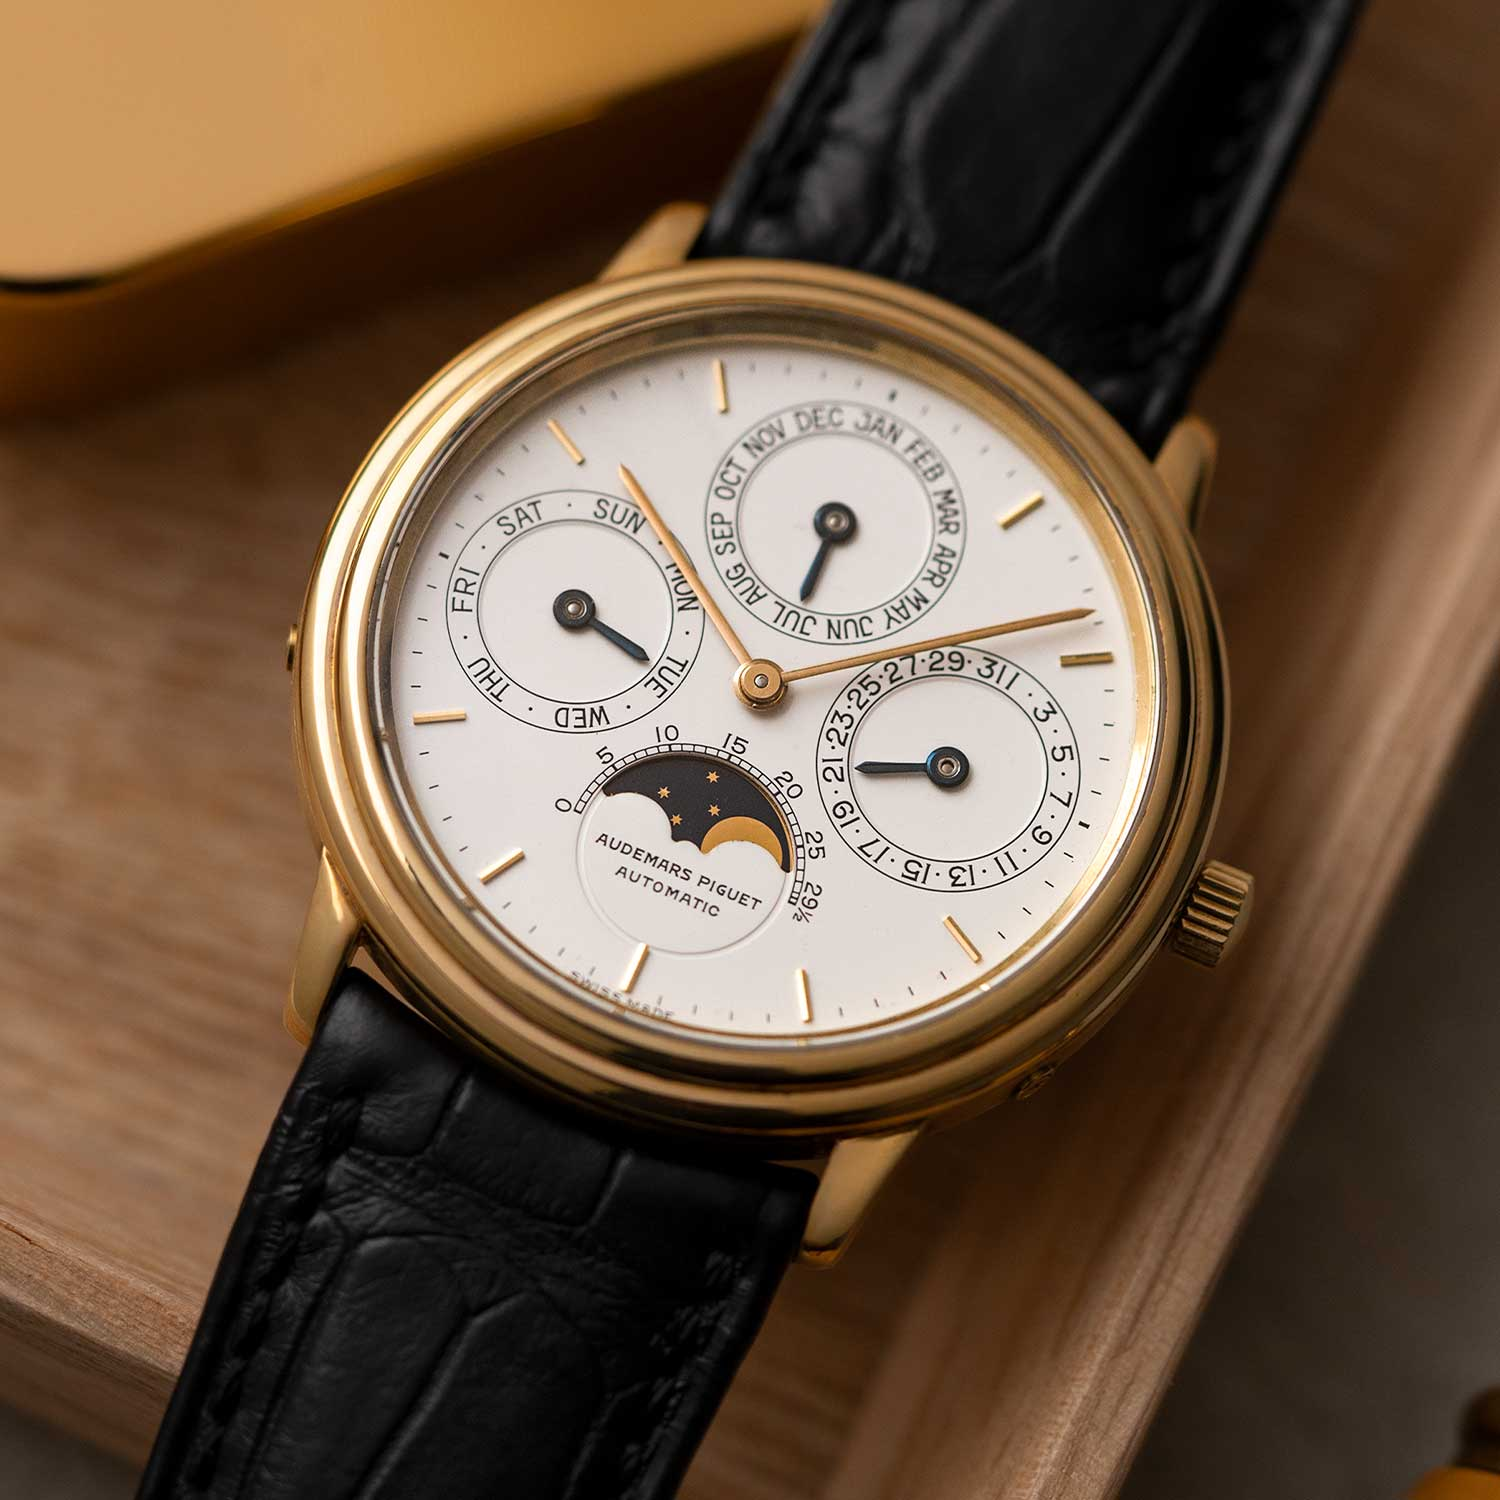 The Audemars Piguet Perpetual Calendar ref. 5548 was unveiled in the midst of the quartz maelstrom. It is clear that Dimier and the trio of Rochat, Golay and Berney wanted their watch to be a statement of what mechanical watchmaking was capable of. Here in a case the size of its quartz competition was a mechanical masterpiece that would never age, become obsolete or require a battery change, capable of telling all calendar information in perpetuity.; the watch seen here is presently the property of the Pygmalion Gallery's private collection (Image: Photo and watch, property of Pygmalion Gallery)